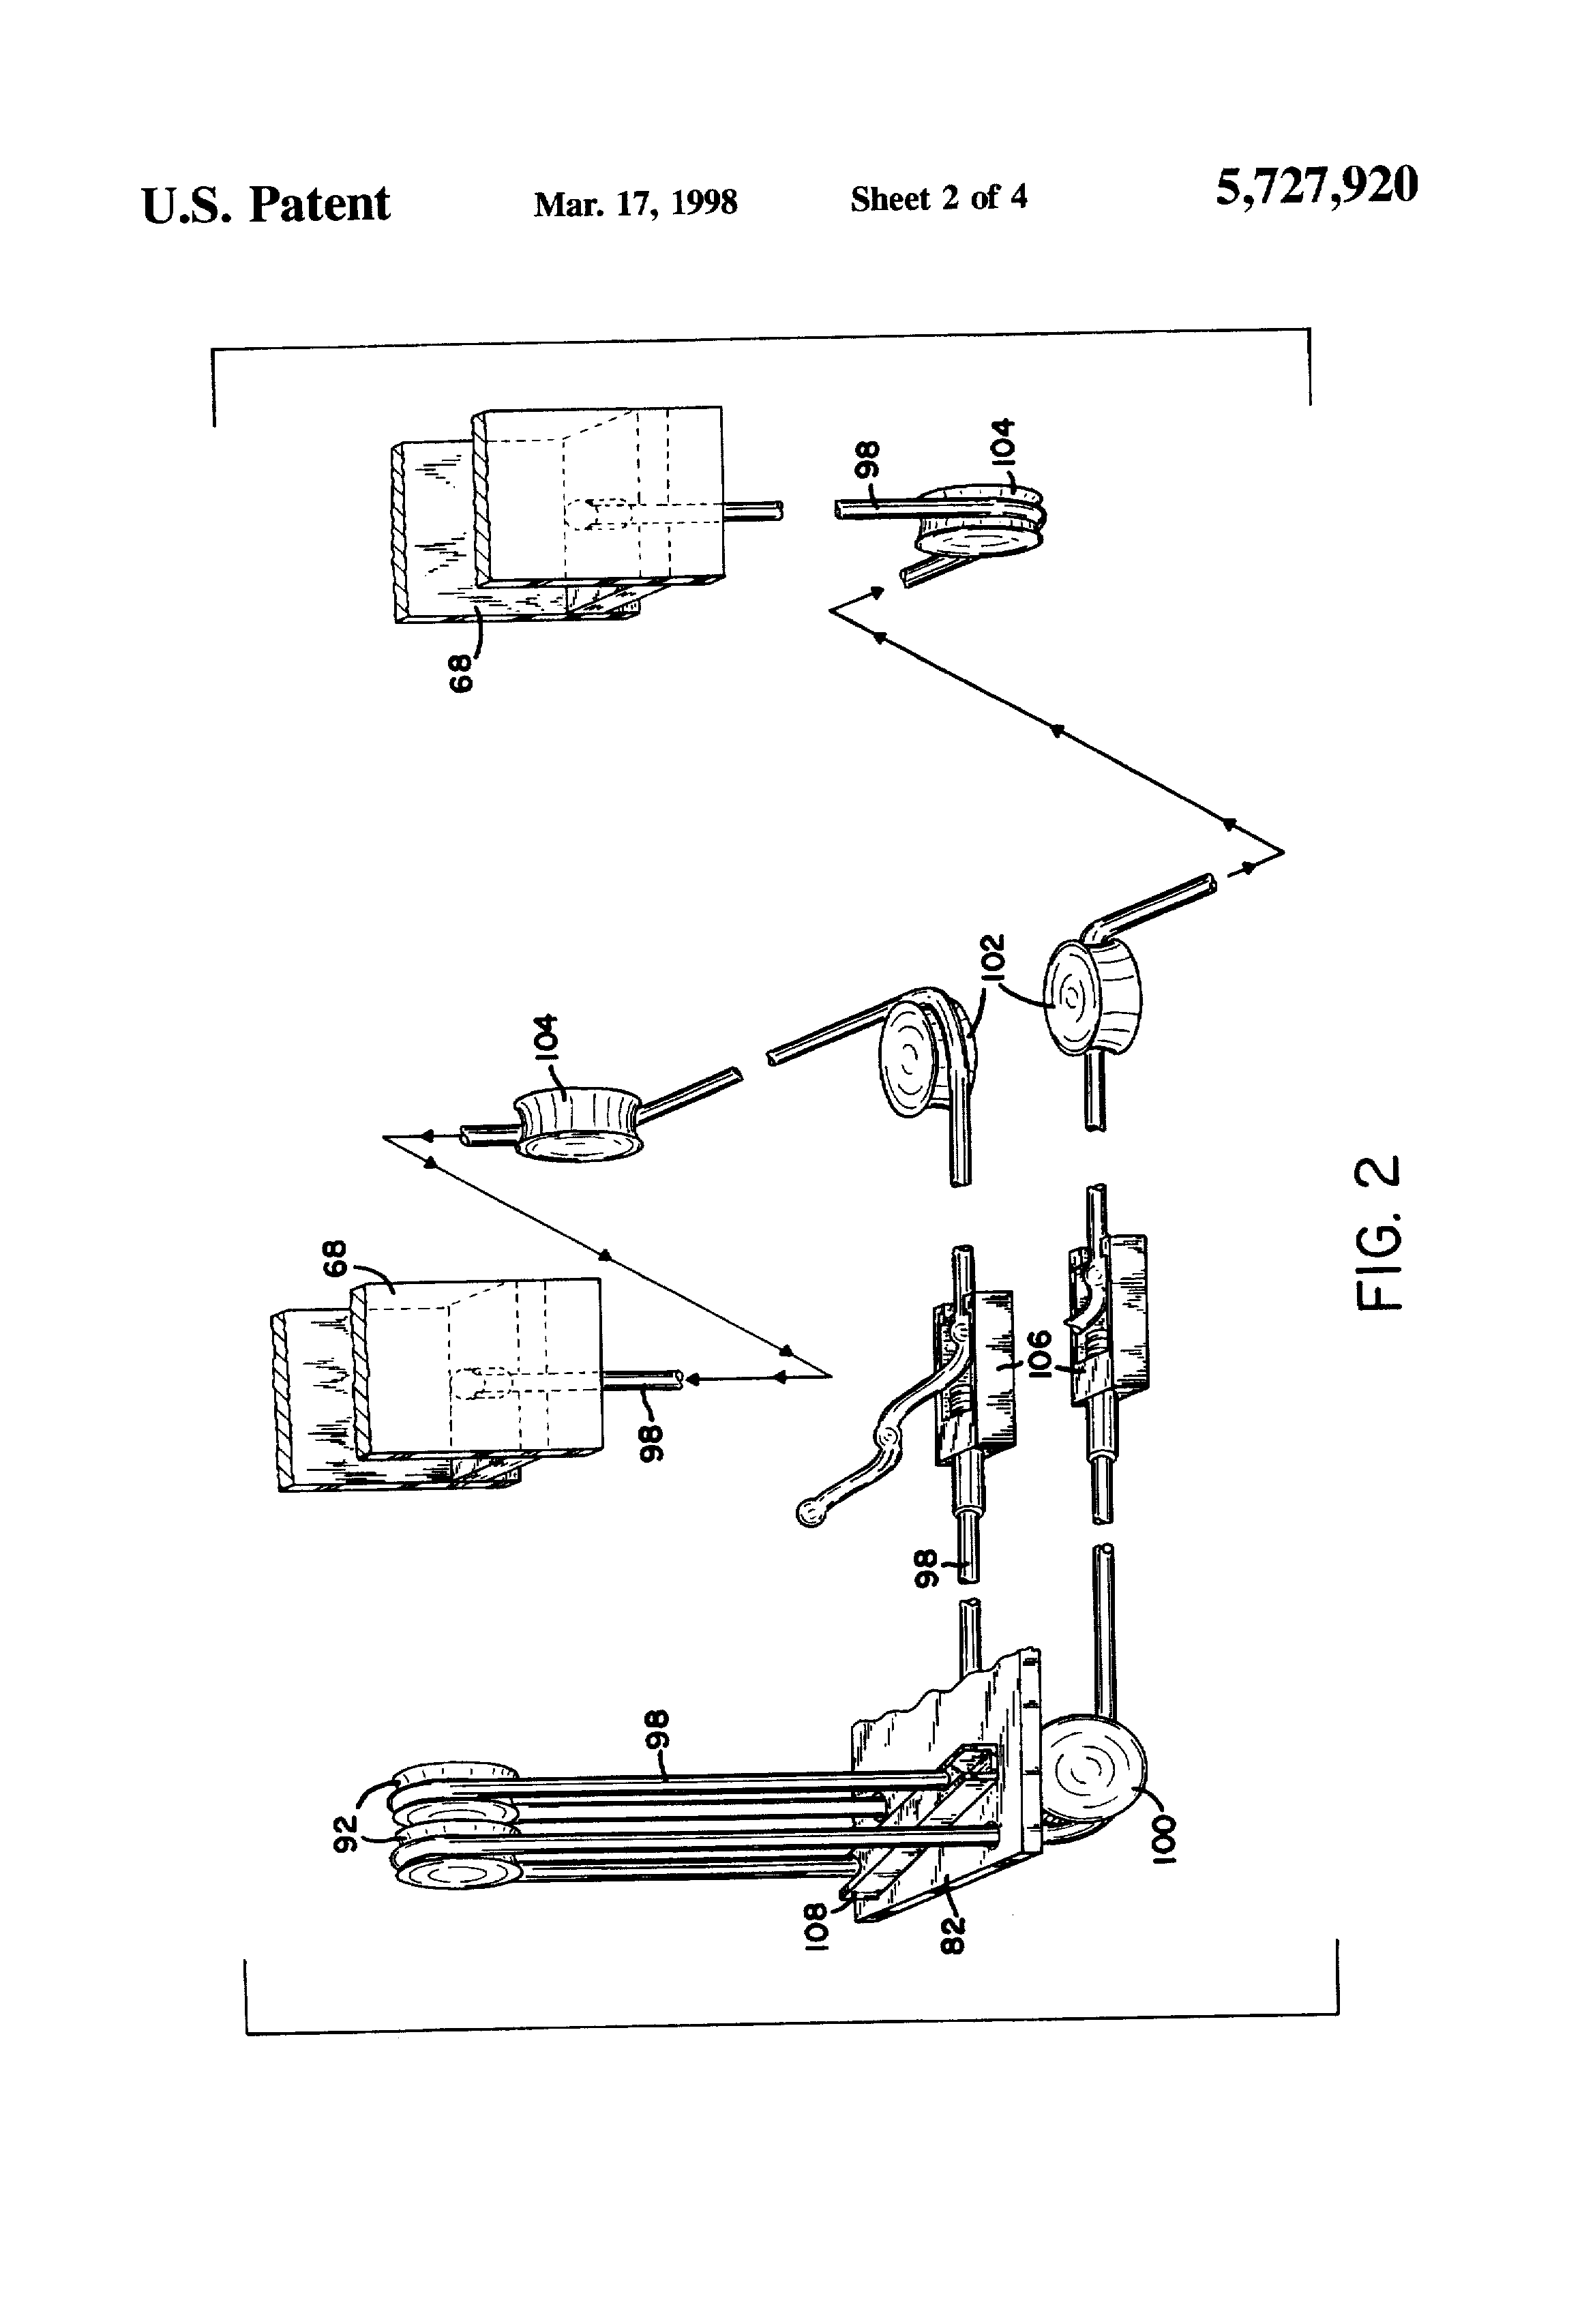 motorcycle hitch carrier with Us5727920 on US5727920 additionally US5727920 in addition Motorcycle Cargo likewise 4 Bike Rack Hitch Mount in addition 2004 Impala Evap System Diagram.